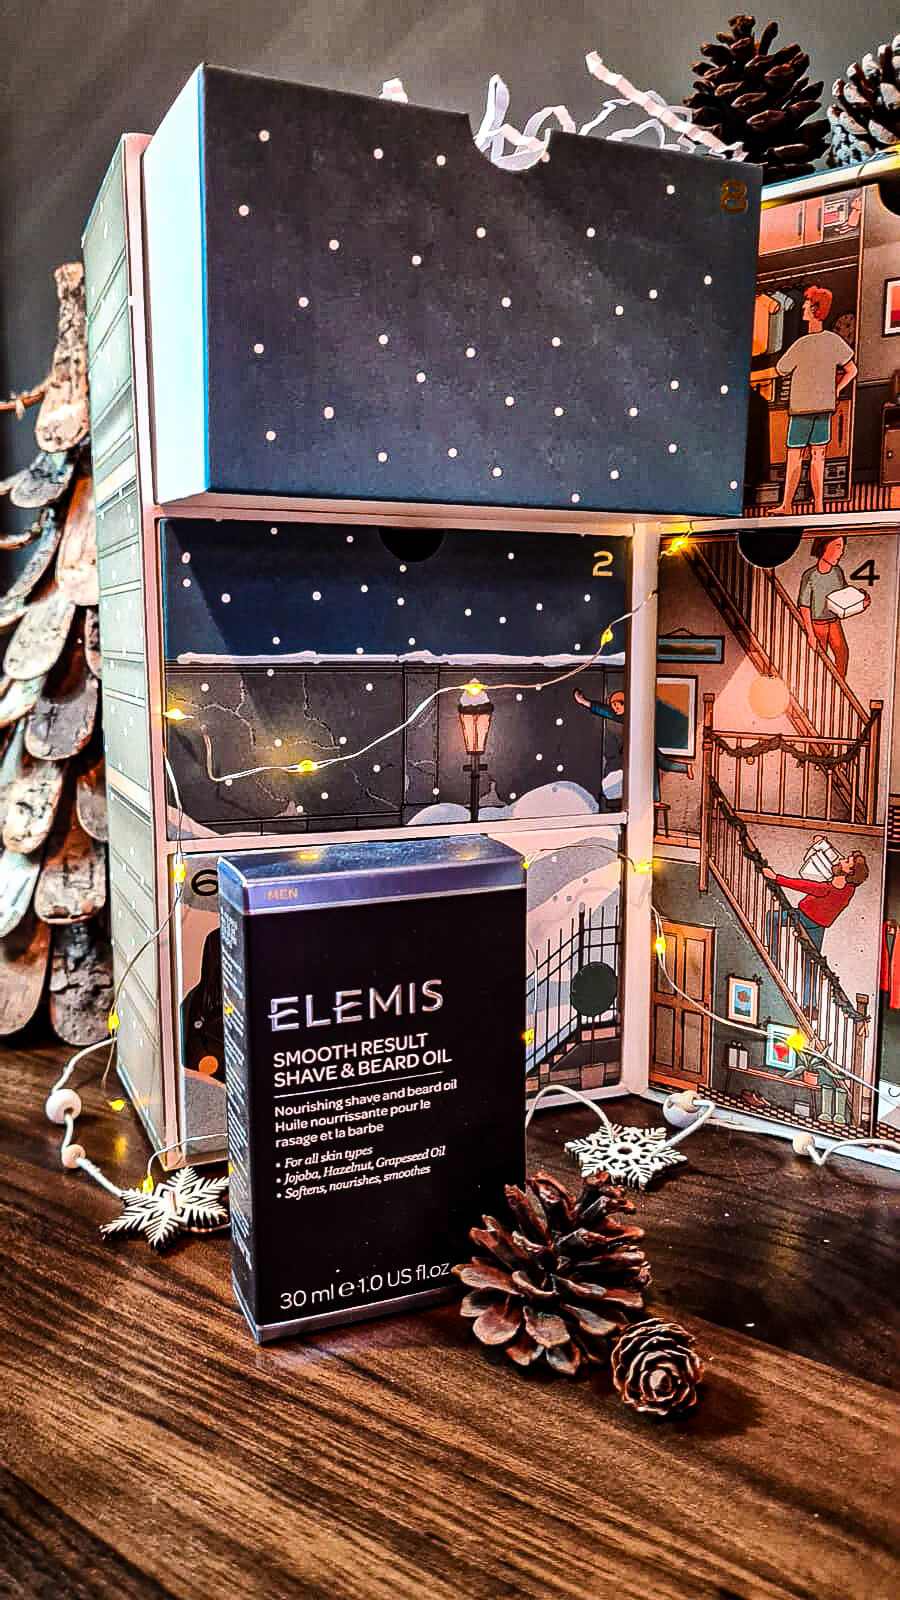 Men's Grooming Luxury Advent Calendar With MR PORTER - Elemis Smooth Result Shave and Beard Oil